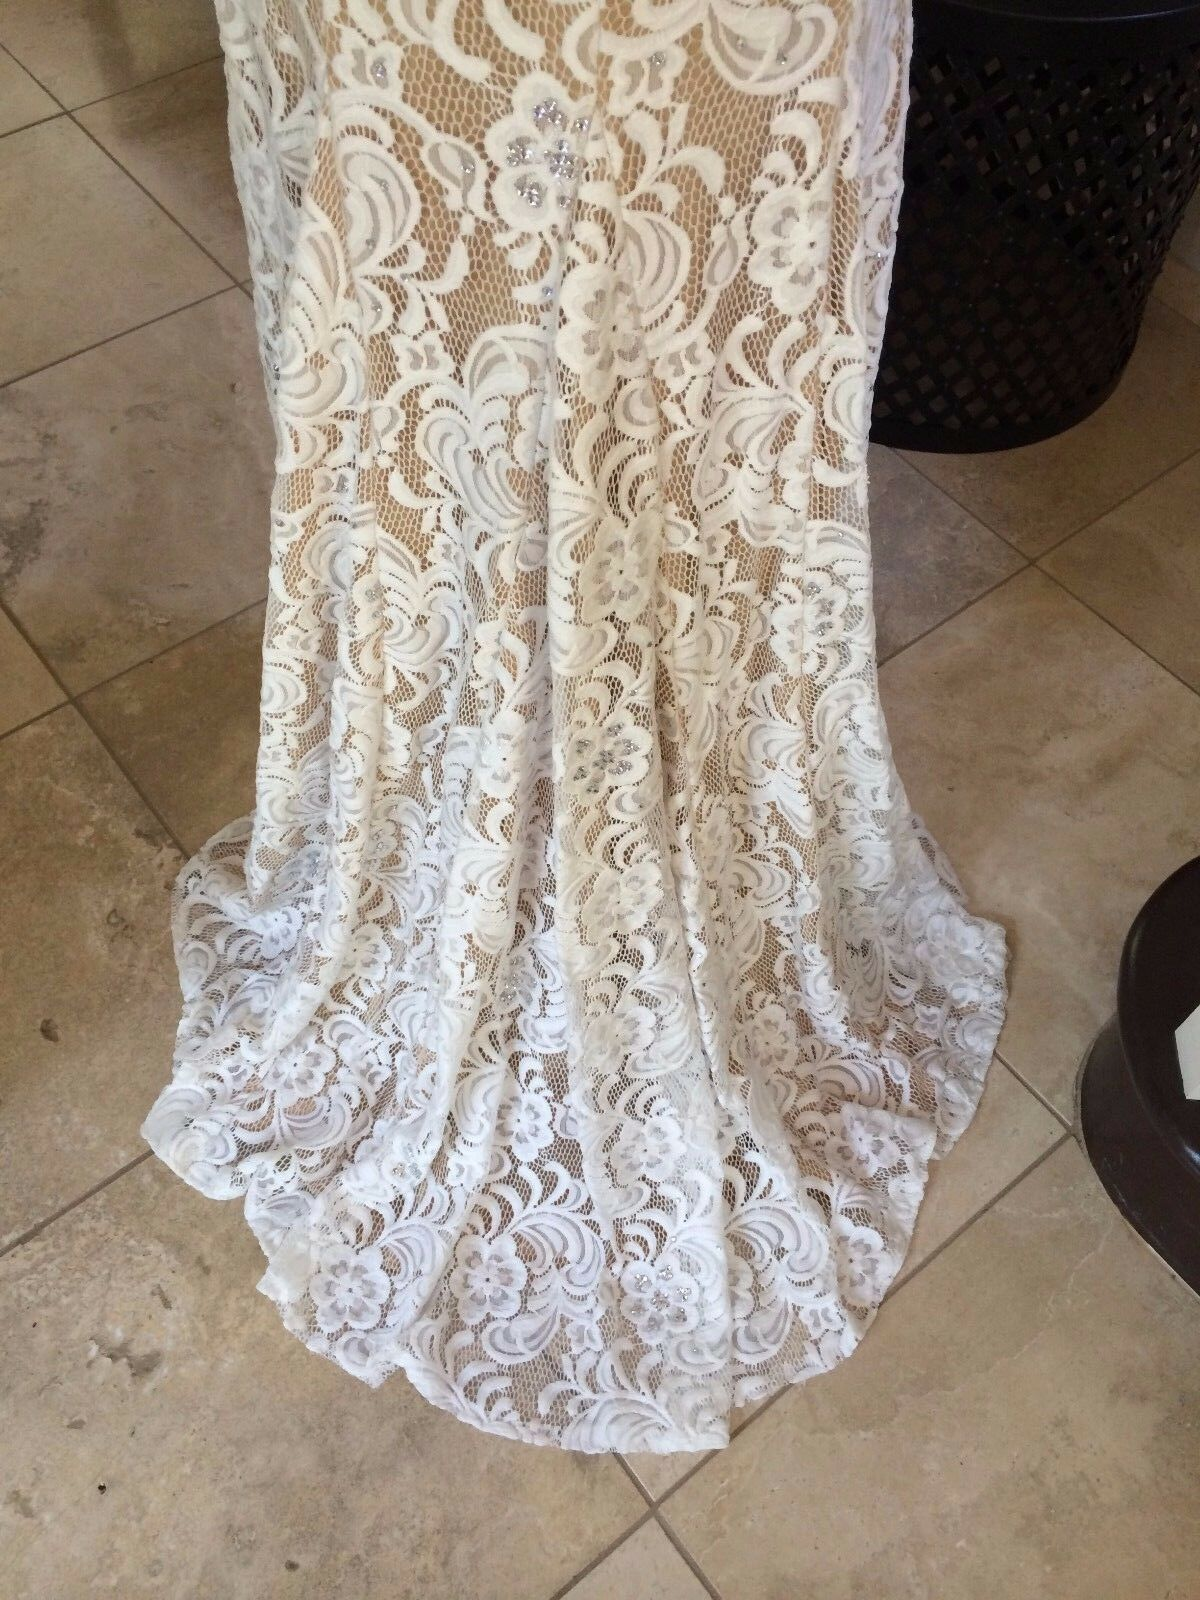 750 NWT IVORY LACE JOVANI JOVANI JOVANI PROM PAGEANT FORMAL WEDDING DRESS GOWN SIZE 2 d2954c